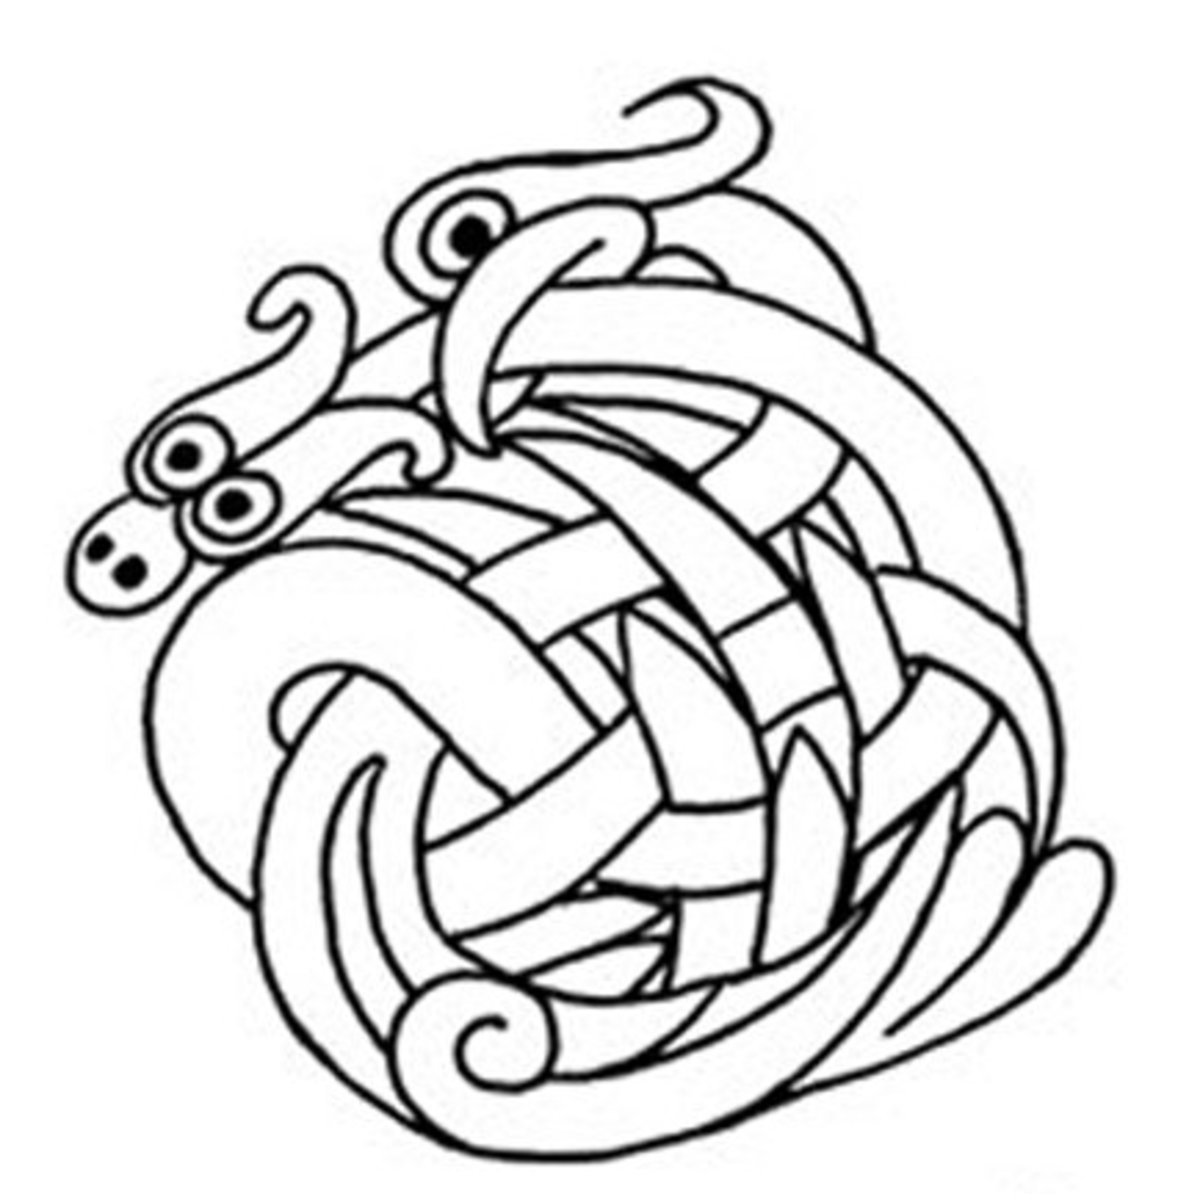 Celtic Design Art Coloring Pages for Kids Colouring Pictures to Print - Two Head Serpent